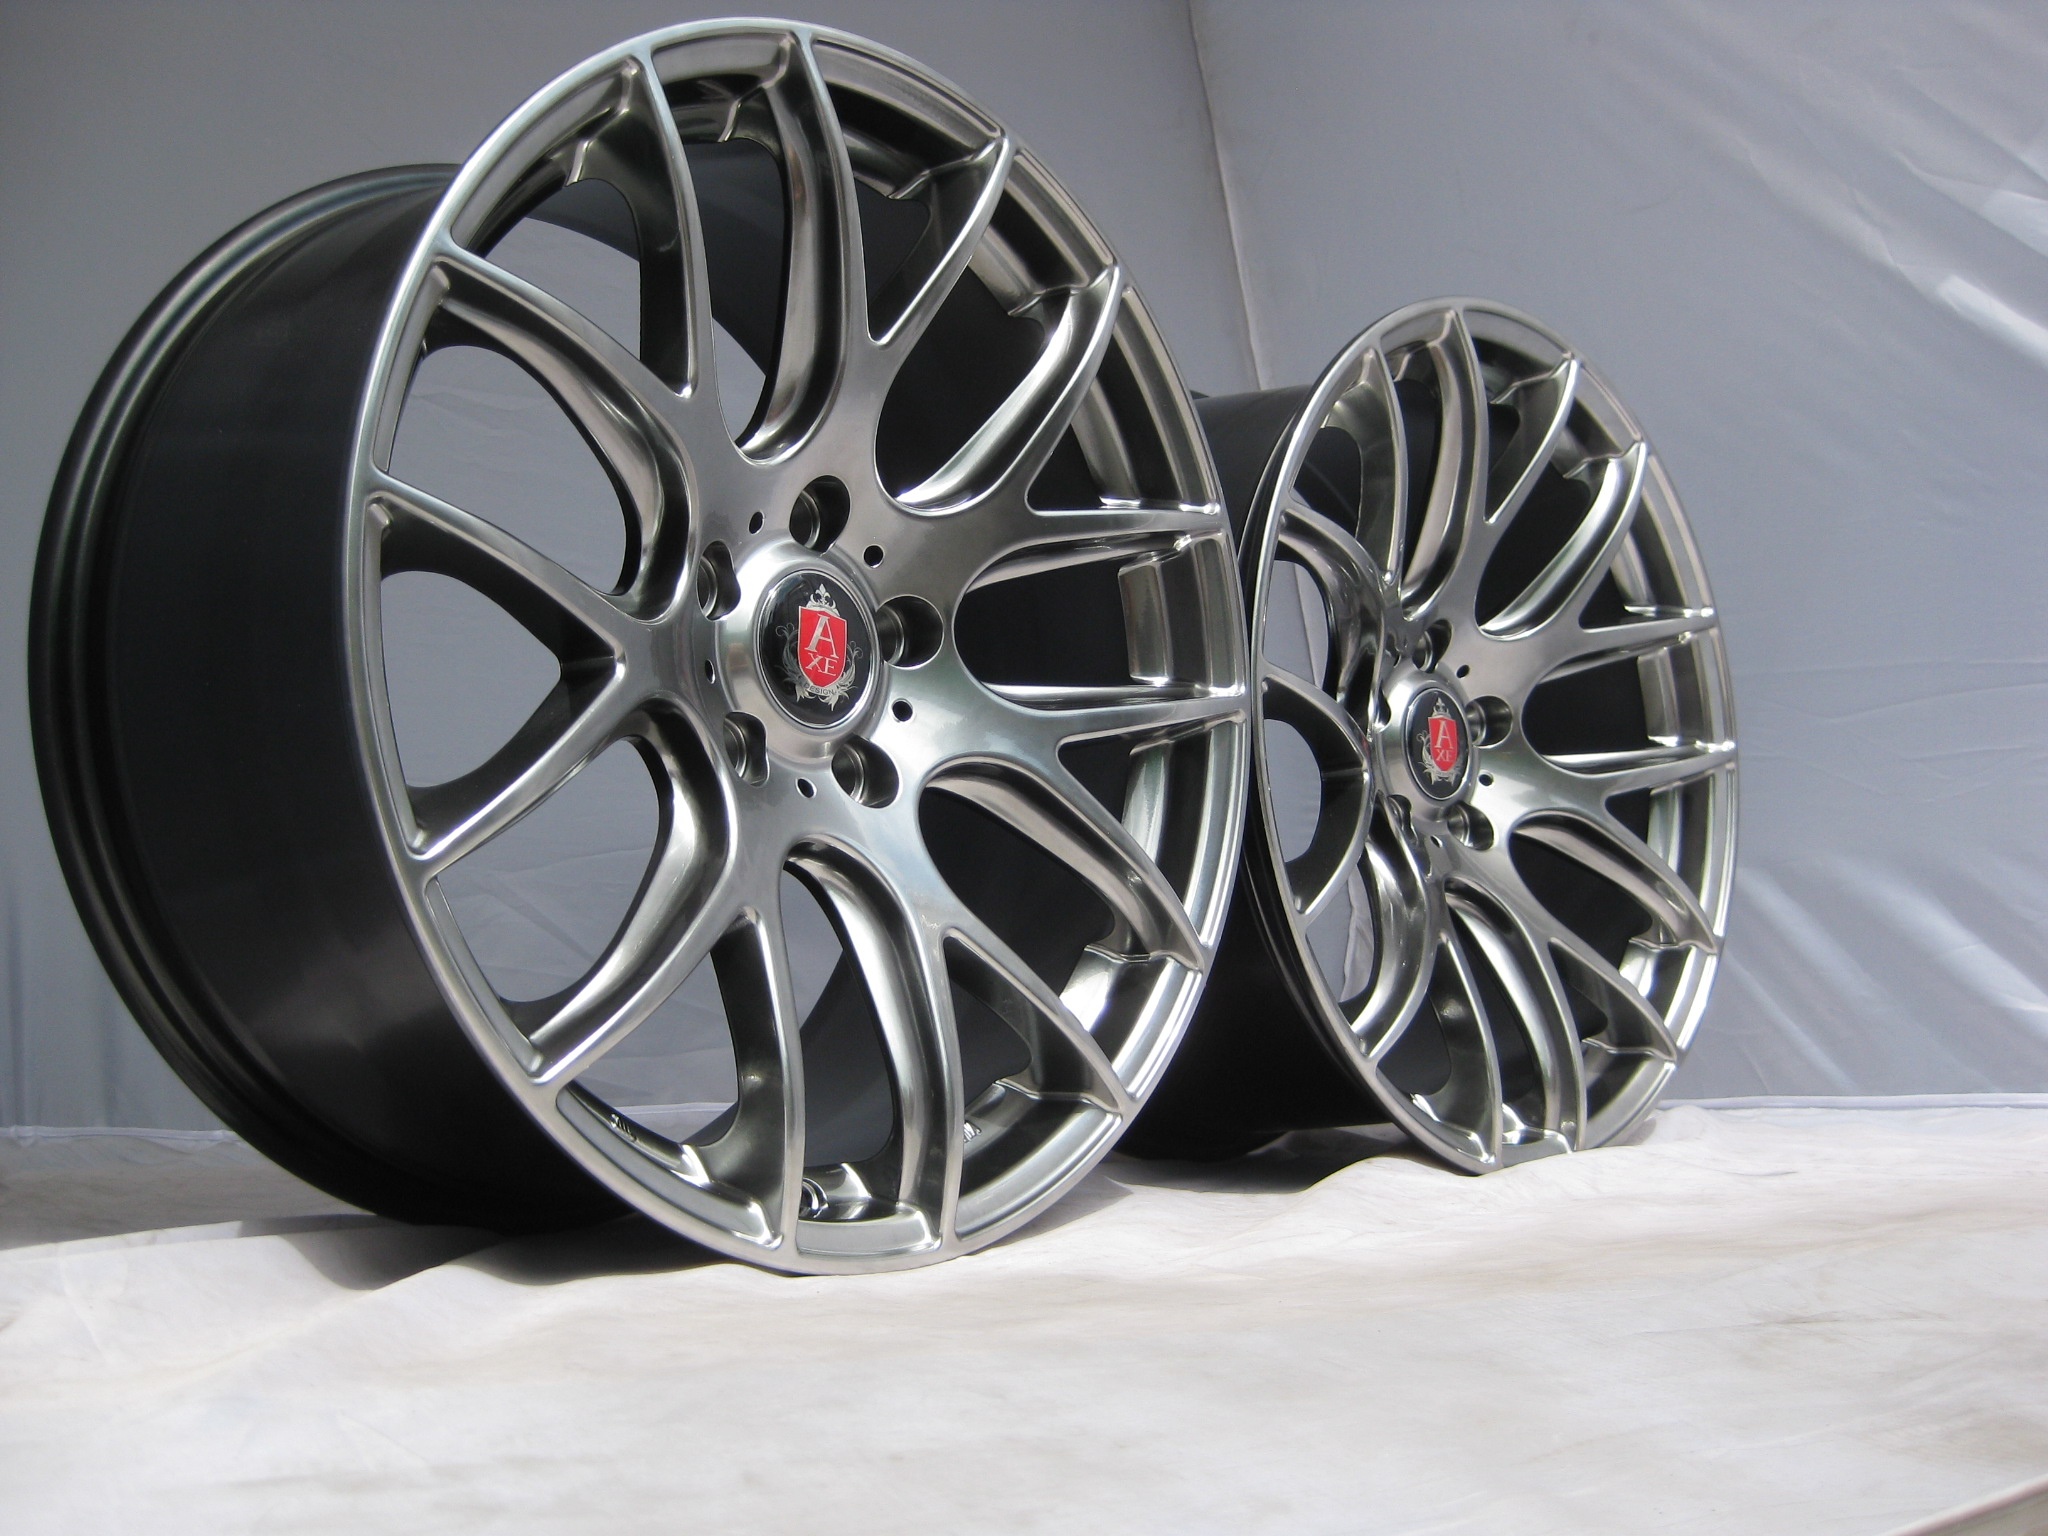 New 19 Quot Axe Cs Lite Alloy Wheels In Hyper Black With Very